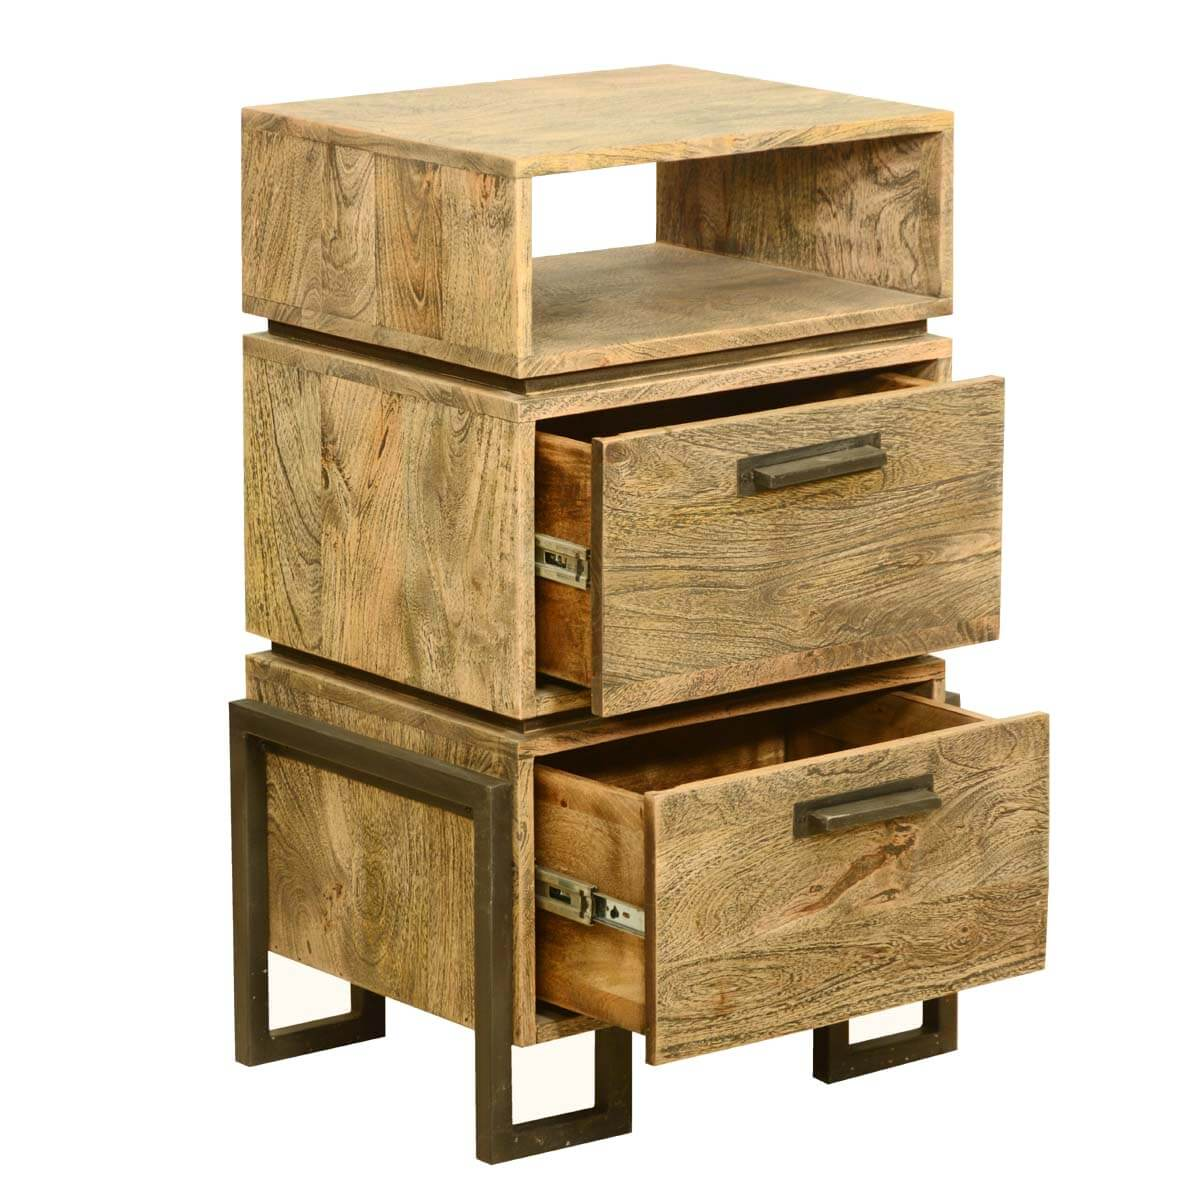 Industrial Look End Tables Modern Rustic Industrial Style Solid Wood And Iron Bedside